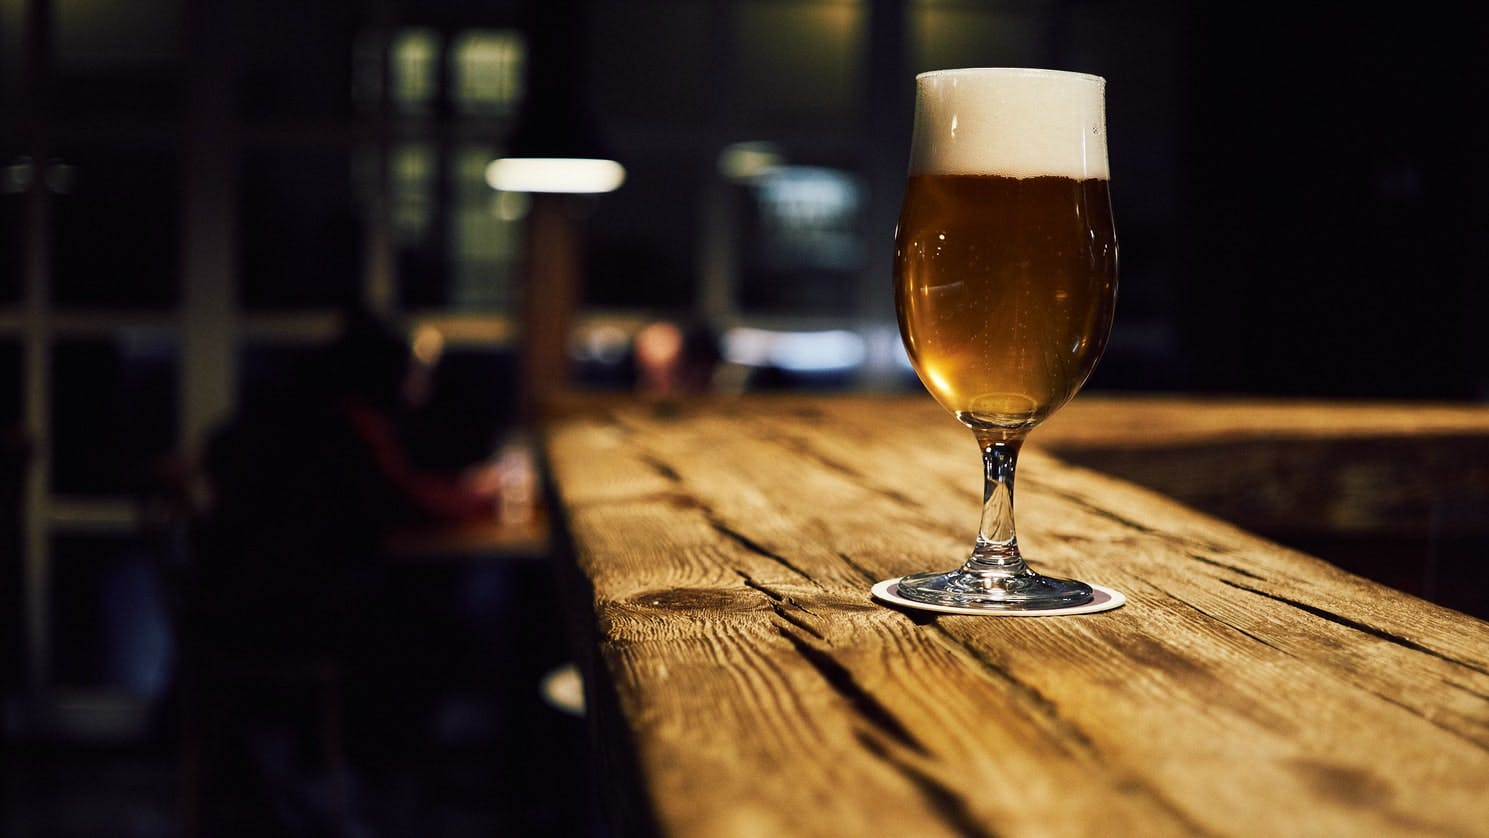 a glass filled with beer on a wooden table